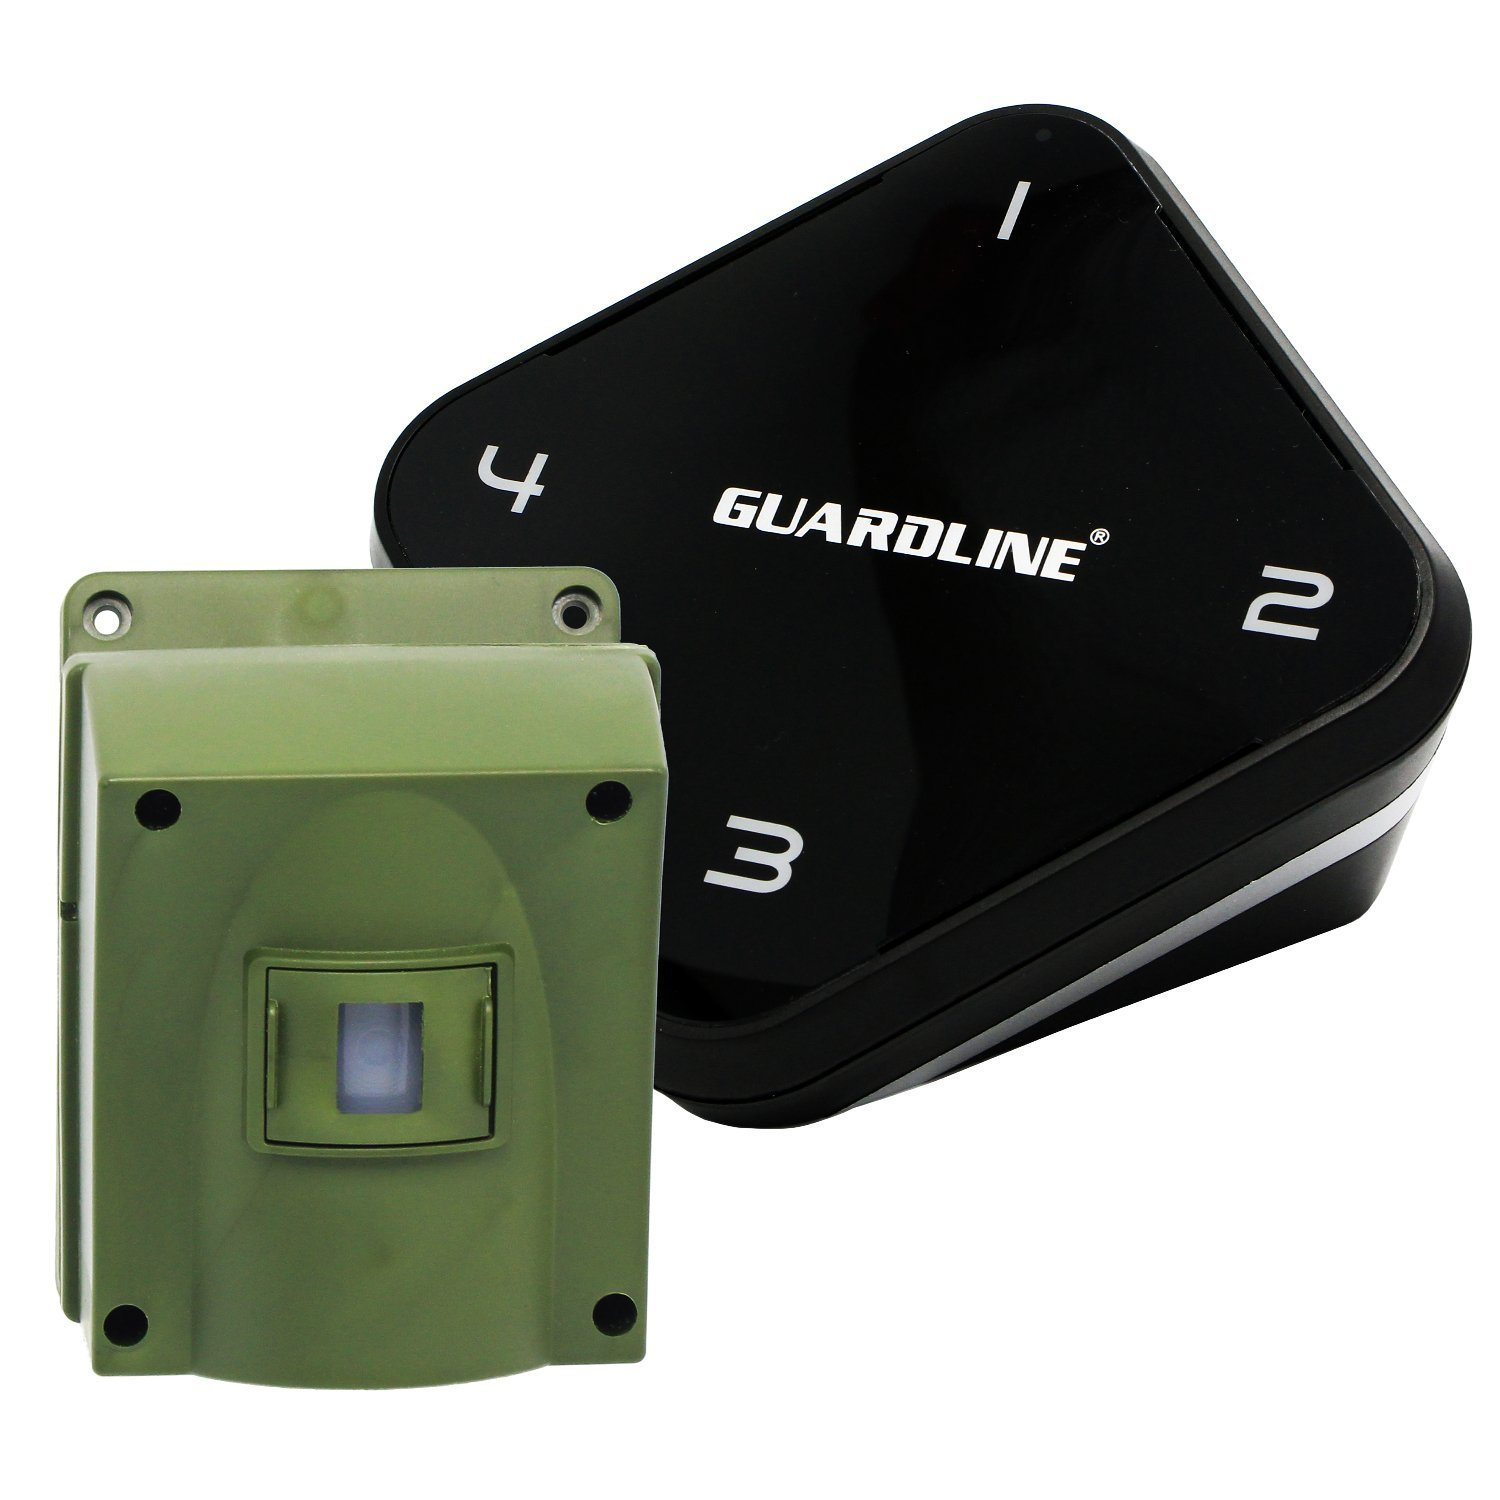 Guardline 1-4 Mile Long Range Wireless Driveway Alarm